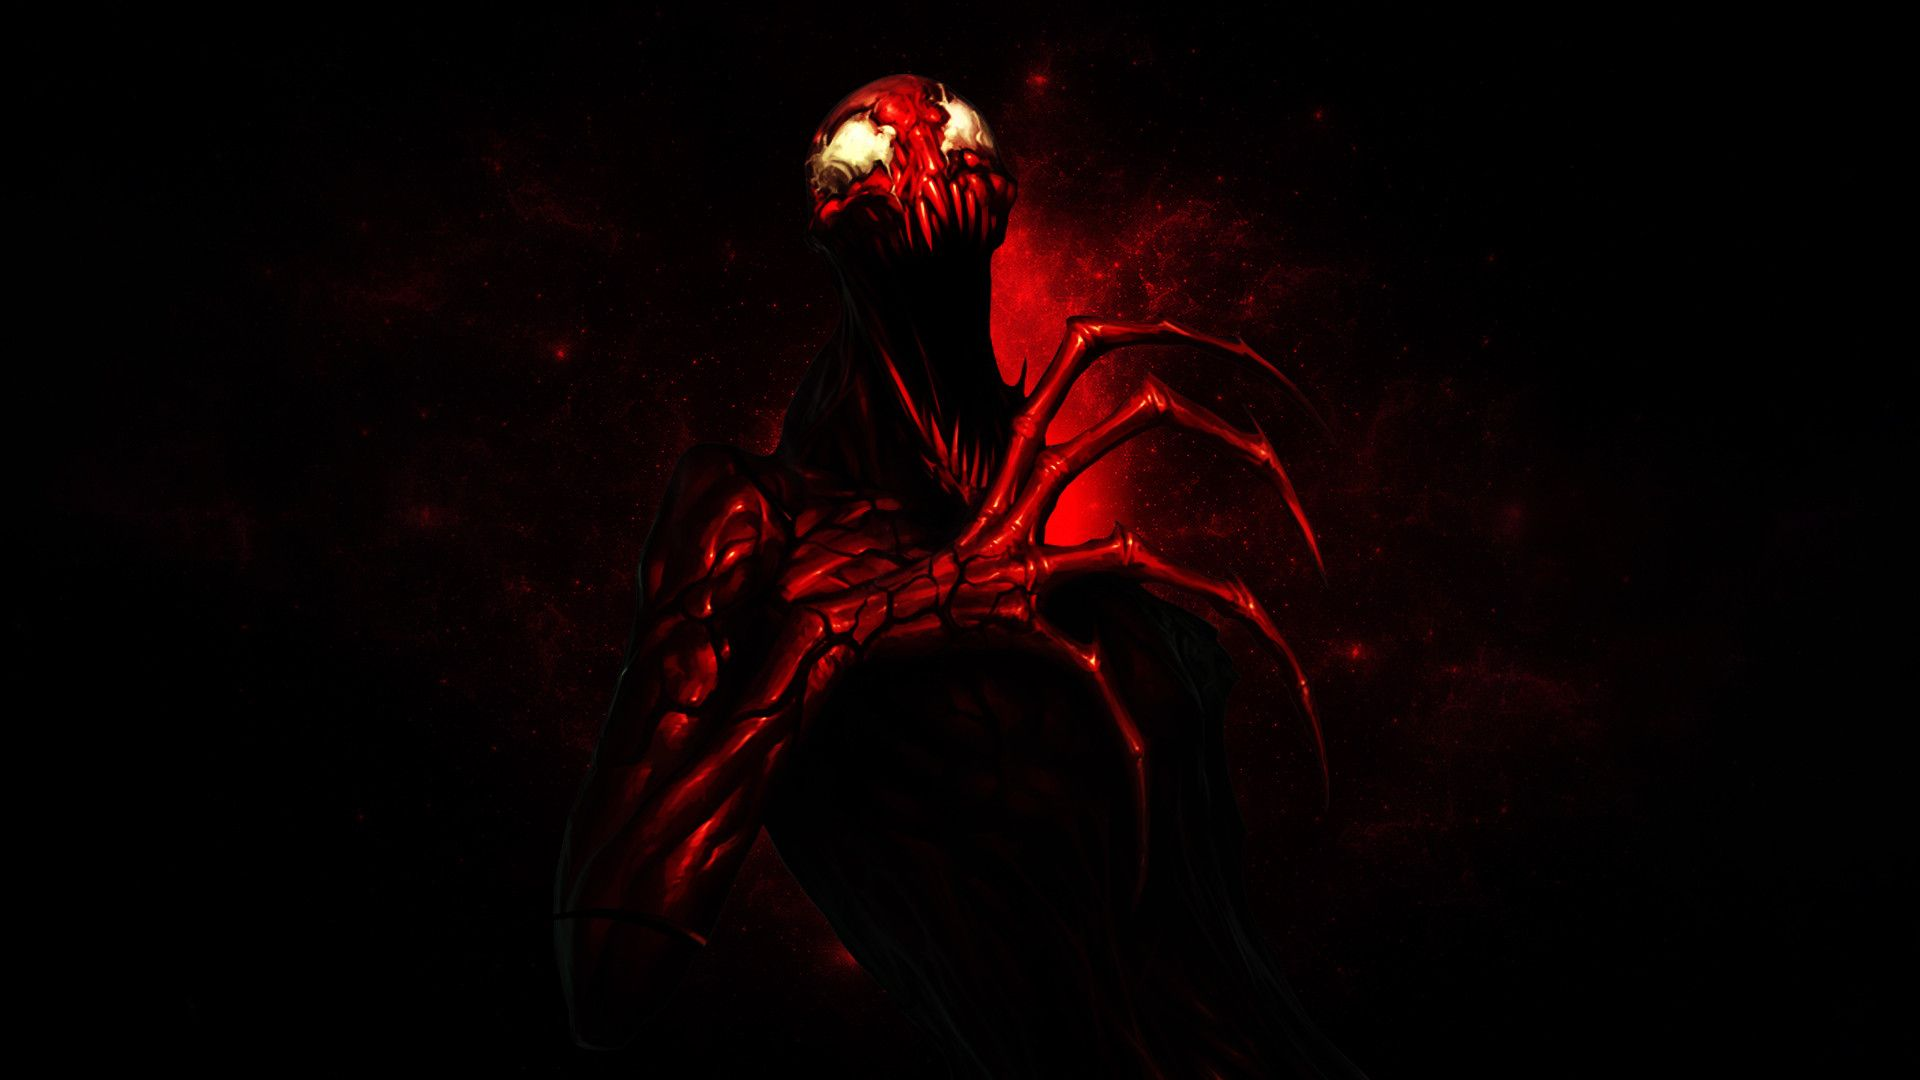 Mobile Compatible Carnage Wallpapers, Carnage Free Backgrounds 1920x1080